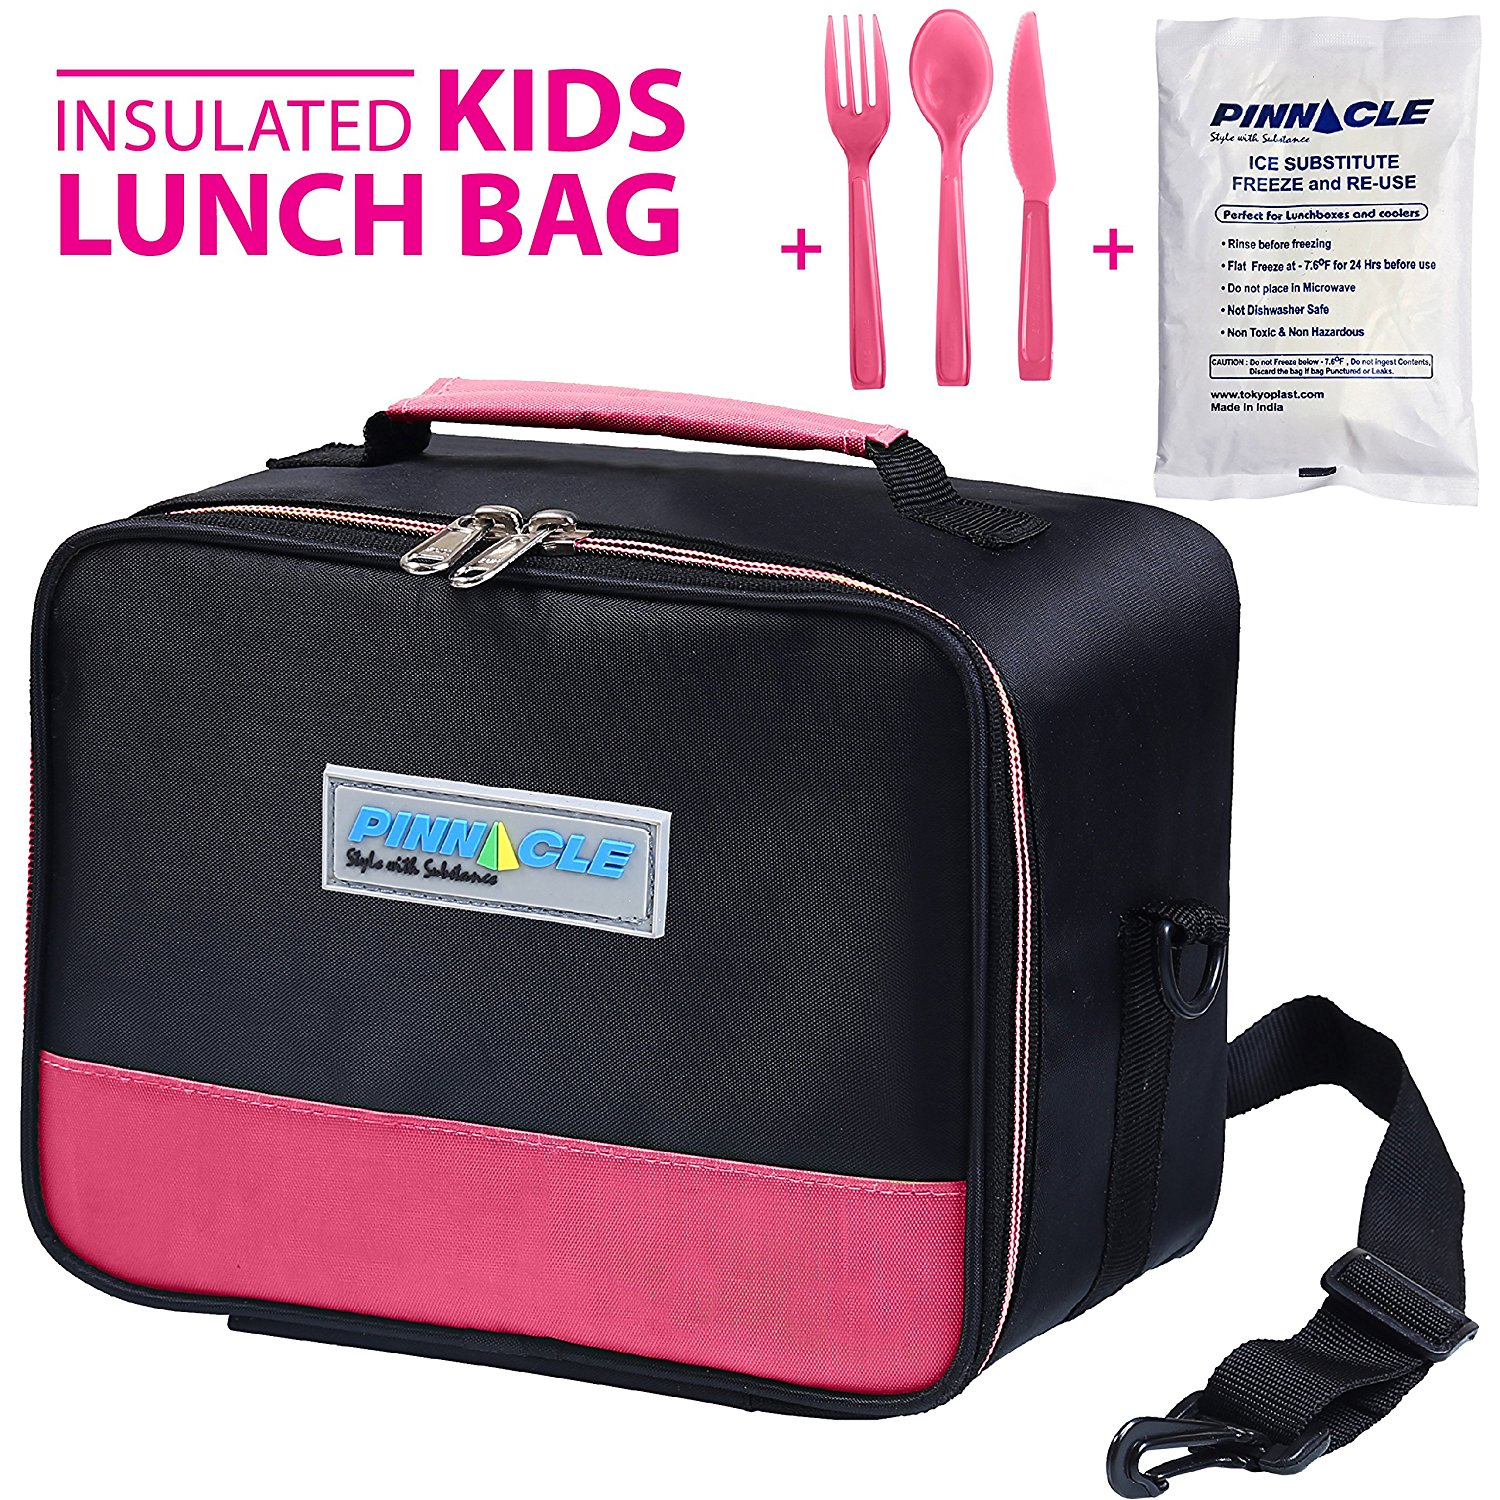 INSULATED LUNCH BOX - PINNACLE Insulated Lunch Bag For Kids, Girls, Boys, Toddlers - Thermal Reusable Lunch Tote - School Lunch Bag With BONUS GEL ICE PACK And MATCHING CUTLERY - 2 Way Zipper - PINK